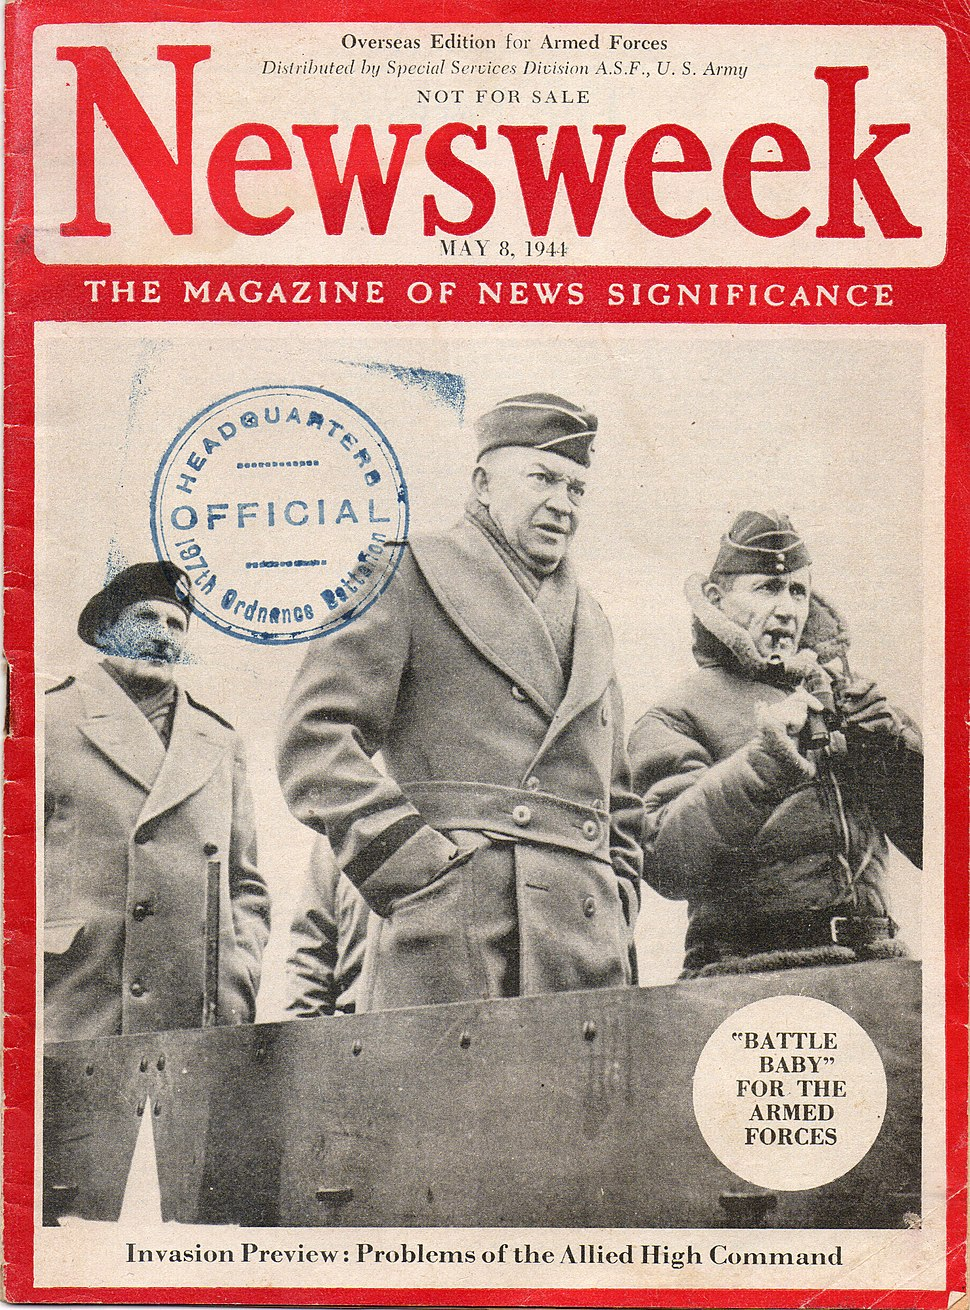 Newsweek WWII Armed Forces Overseas Edition 1944